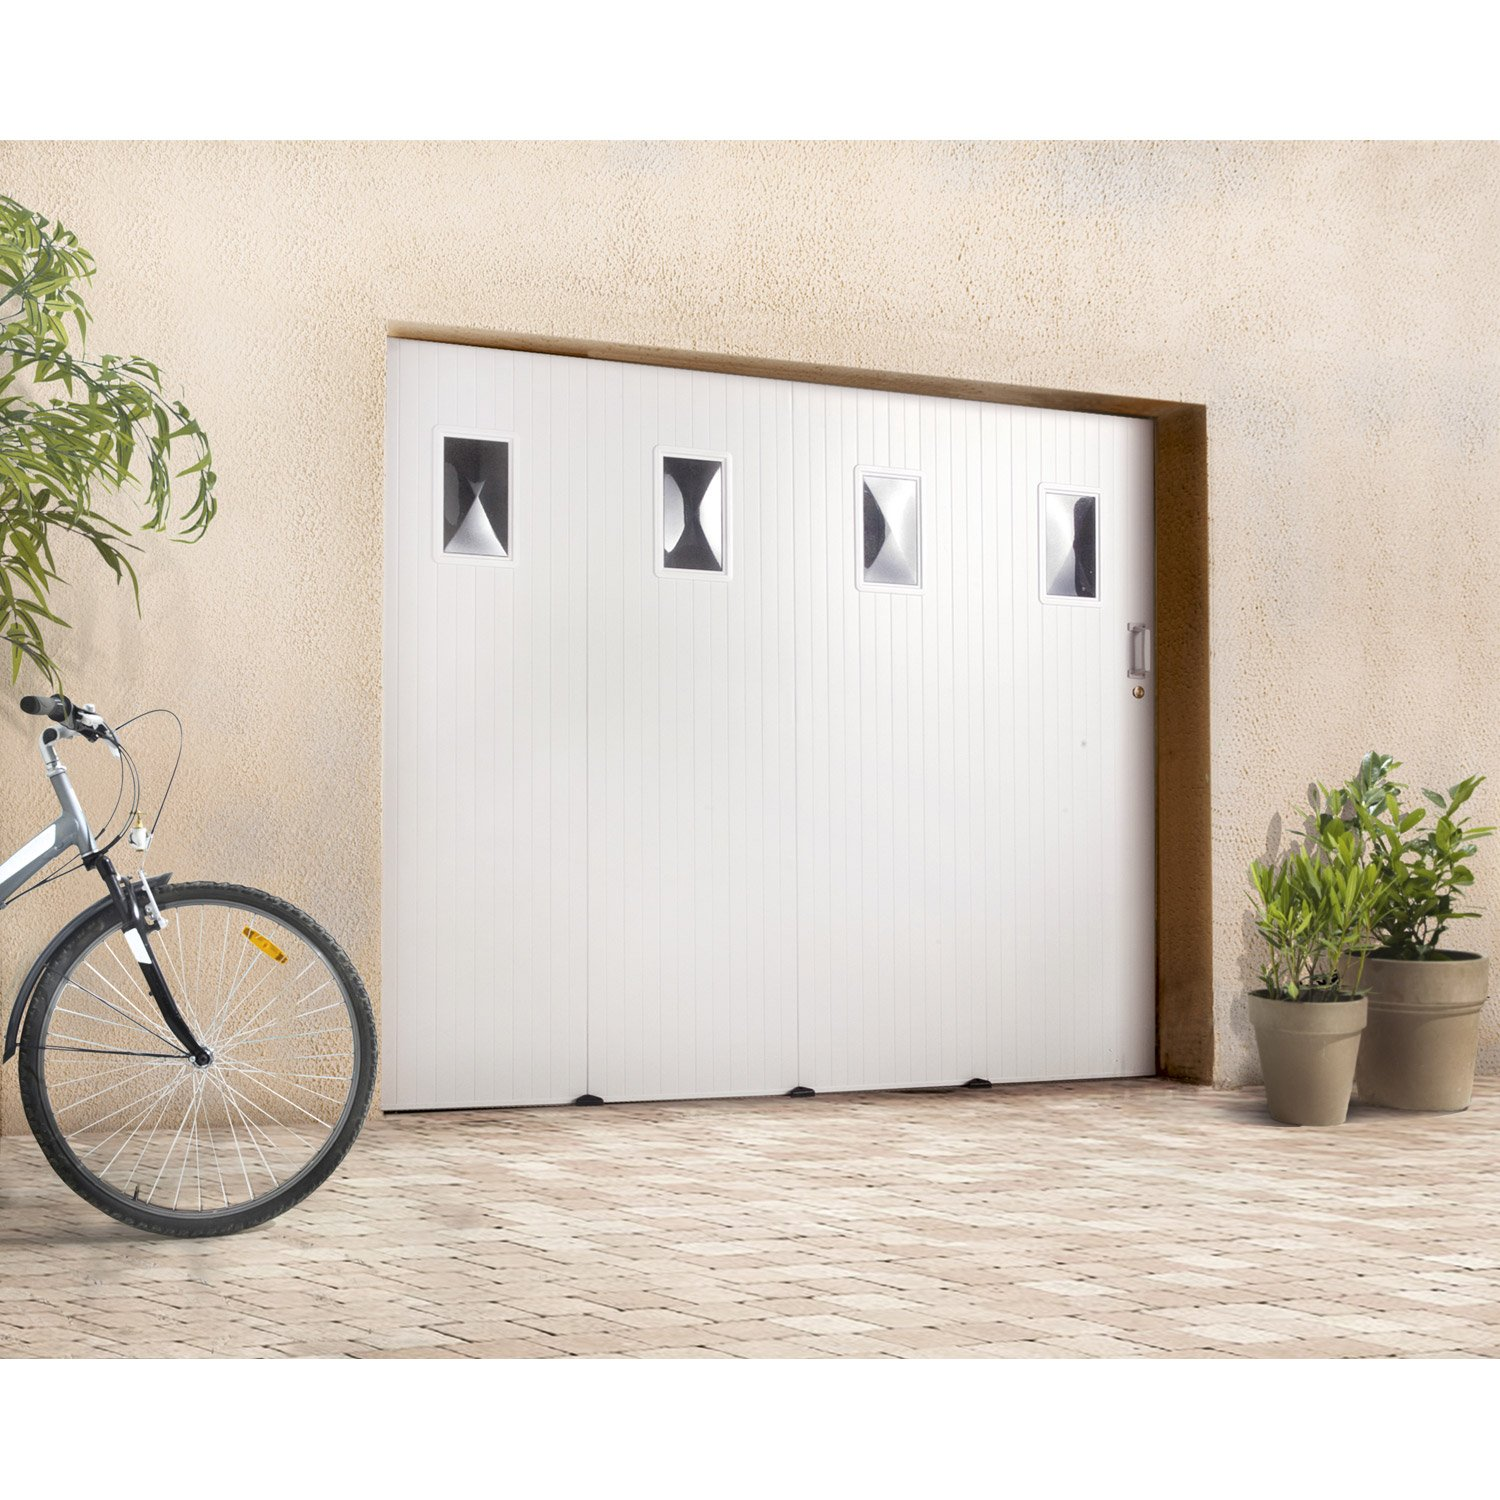 Prix d une porte de garage brico depot isolation id es - Isolation porte de garage coulissante ...